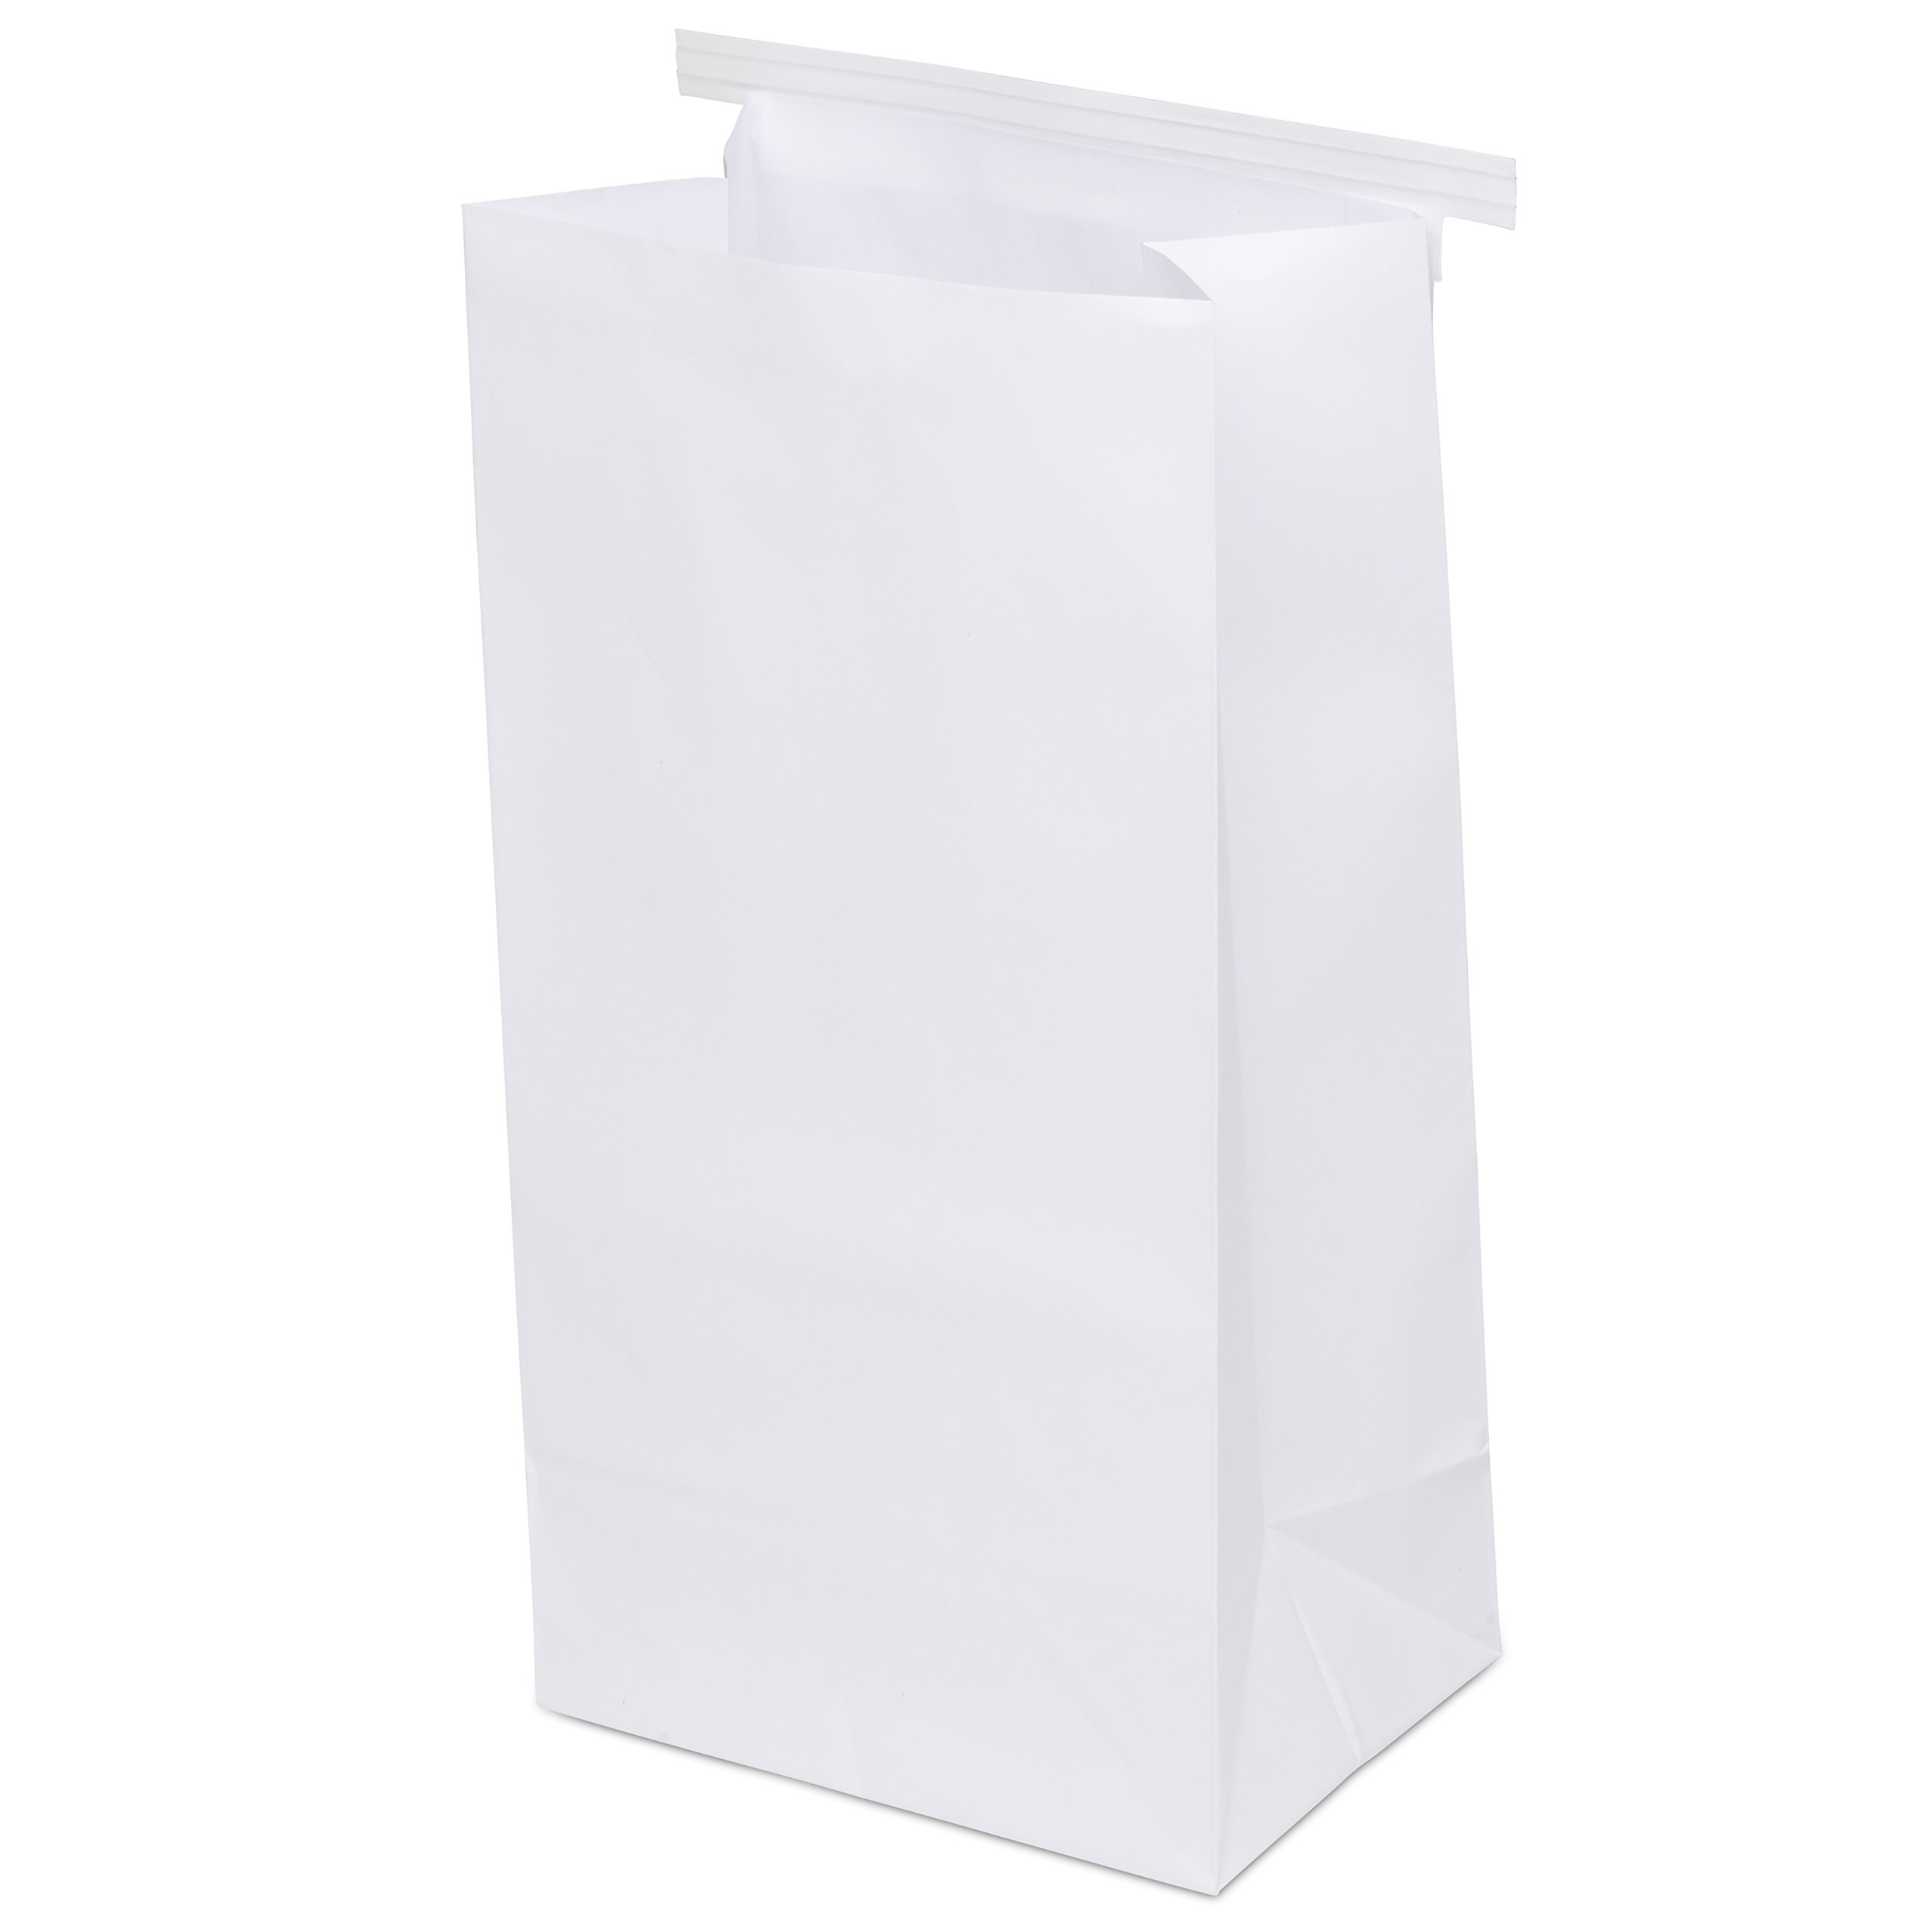 Barf Bags - Vomit Bags for Car, Uber, Travel, and Mornings Sickness - 25 Disposable Emesis Bags by Milton Quality (Image #3)